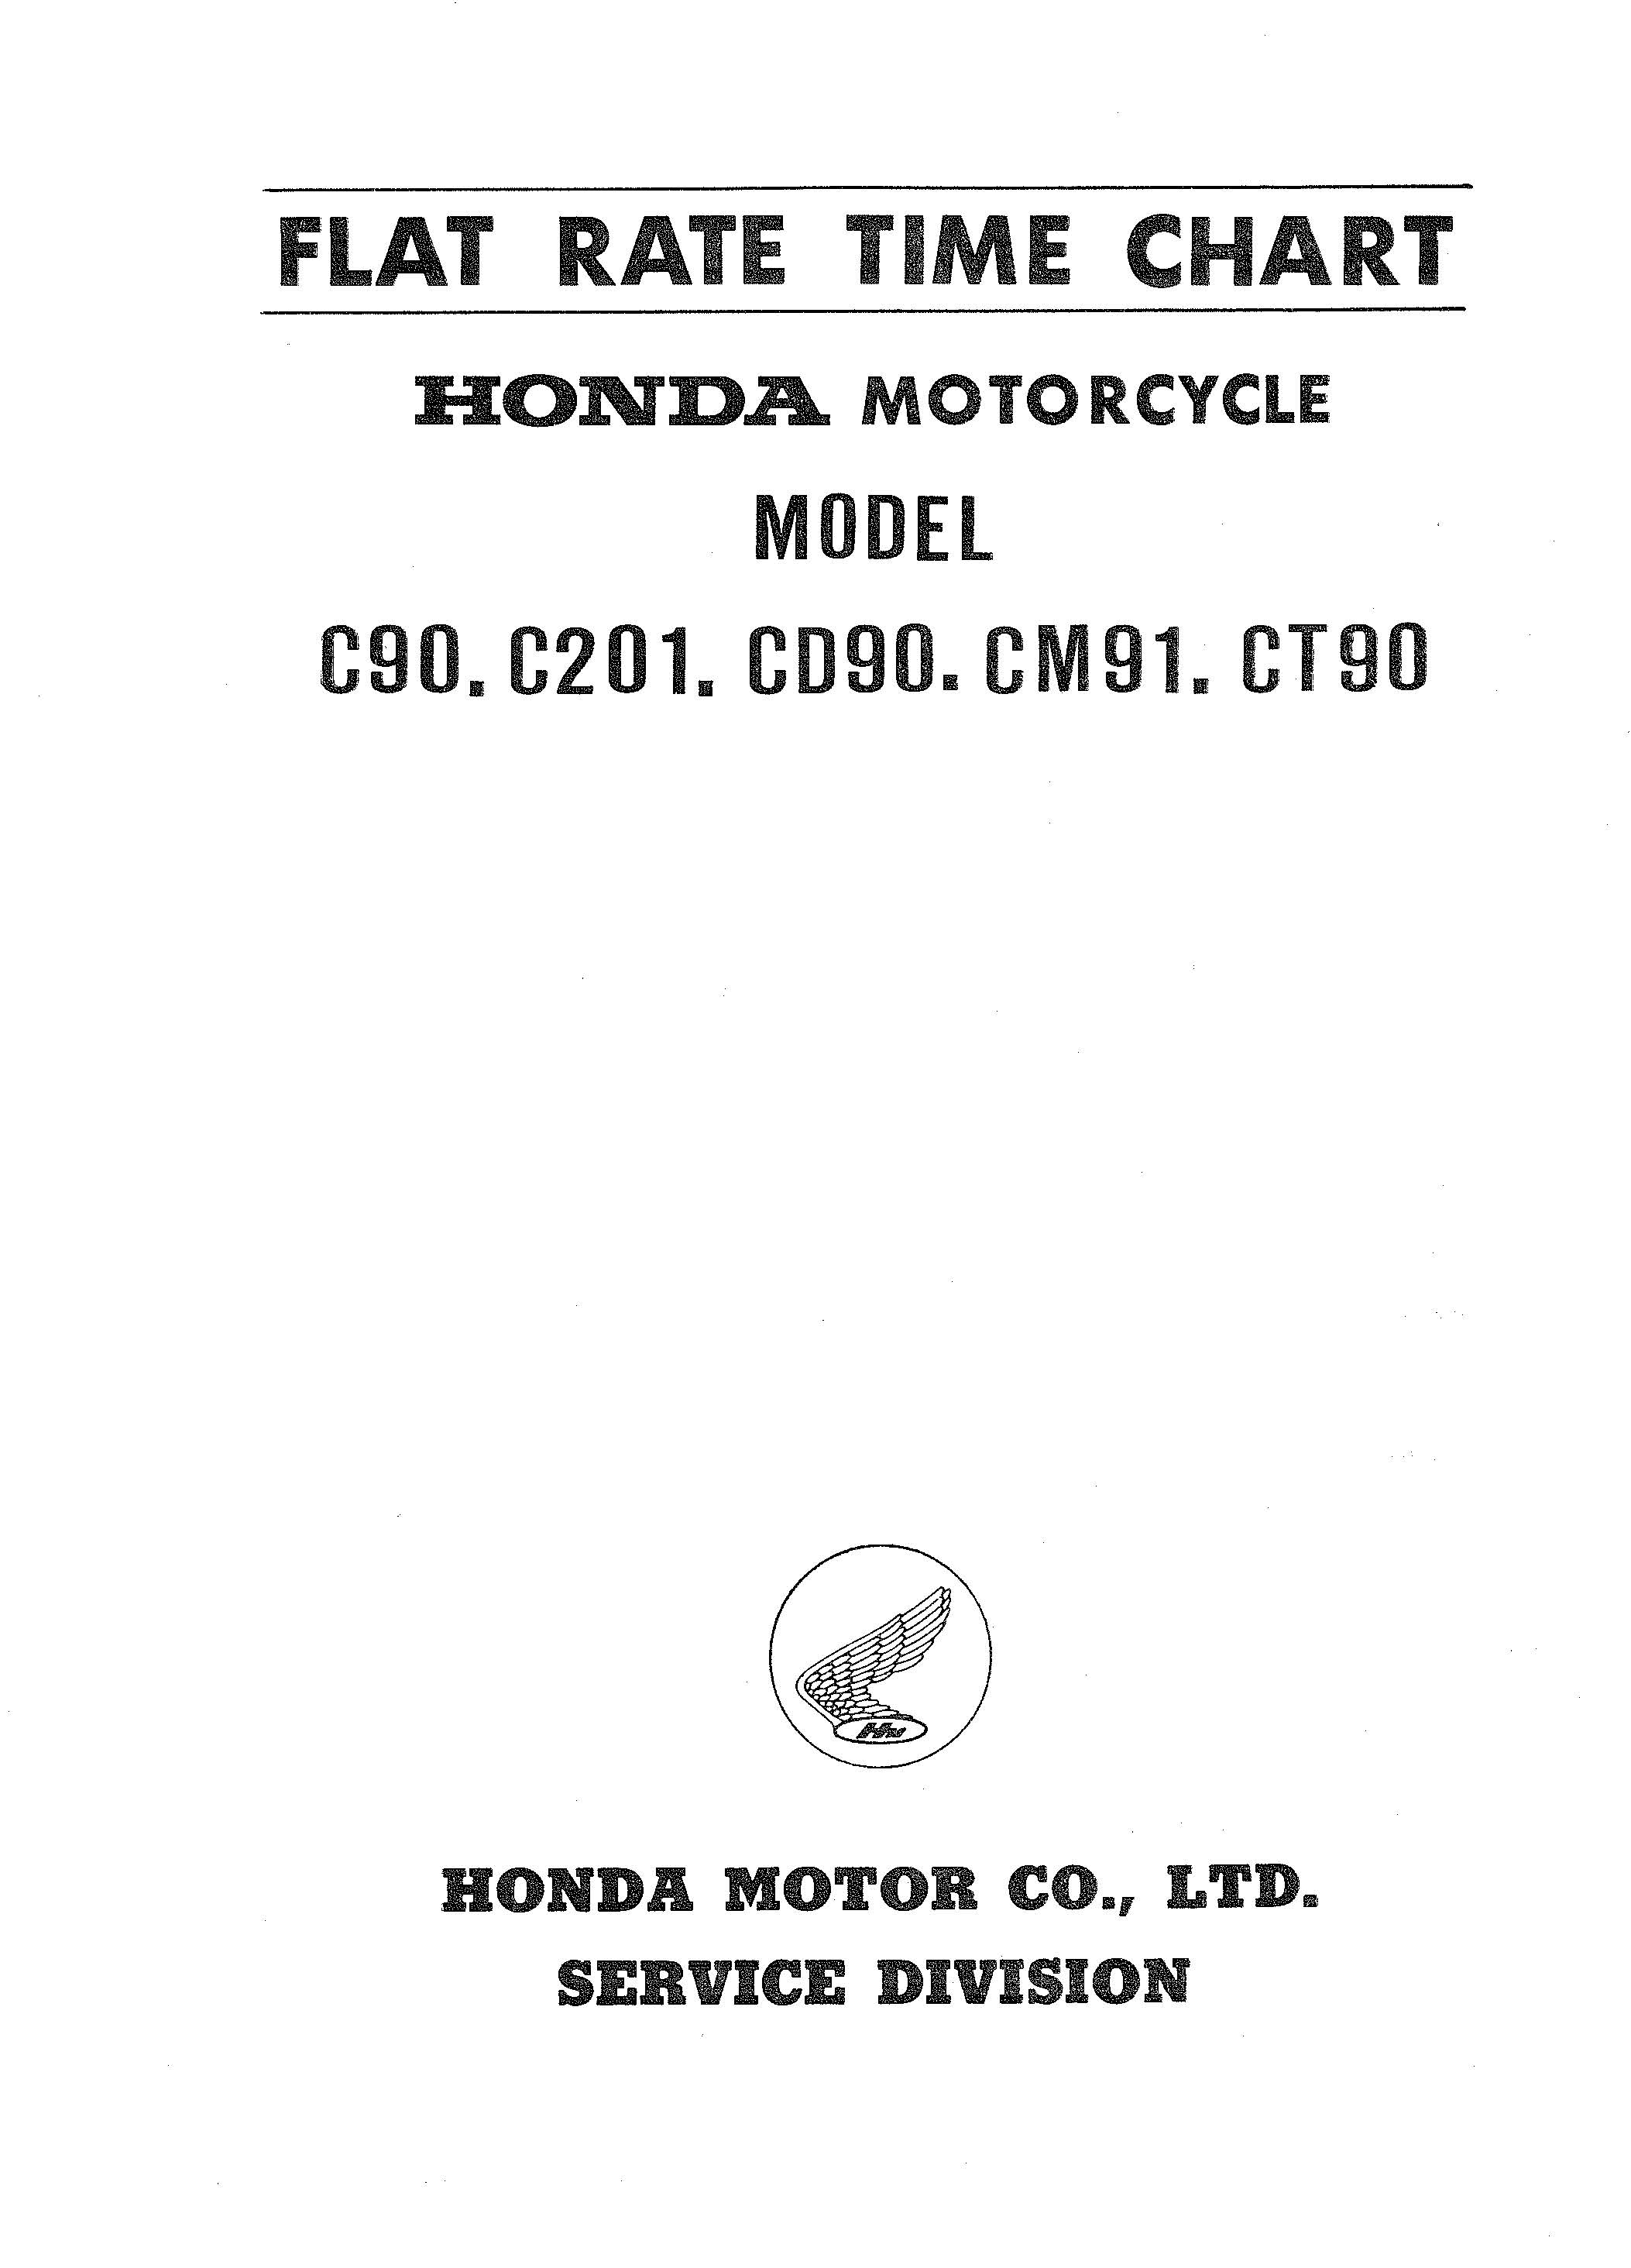 Parts list for Honda CD90 (1967)